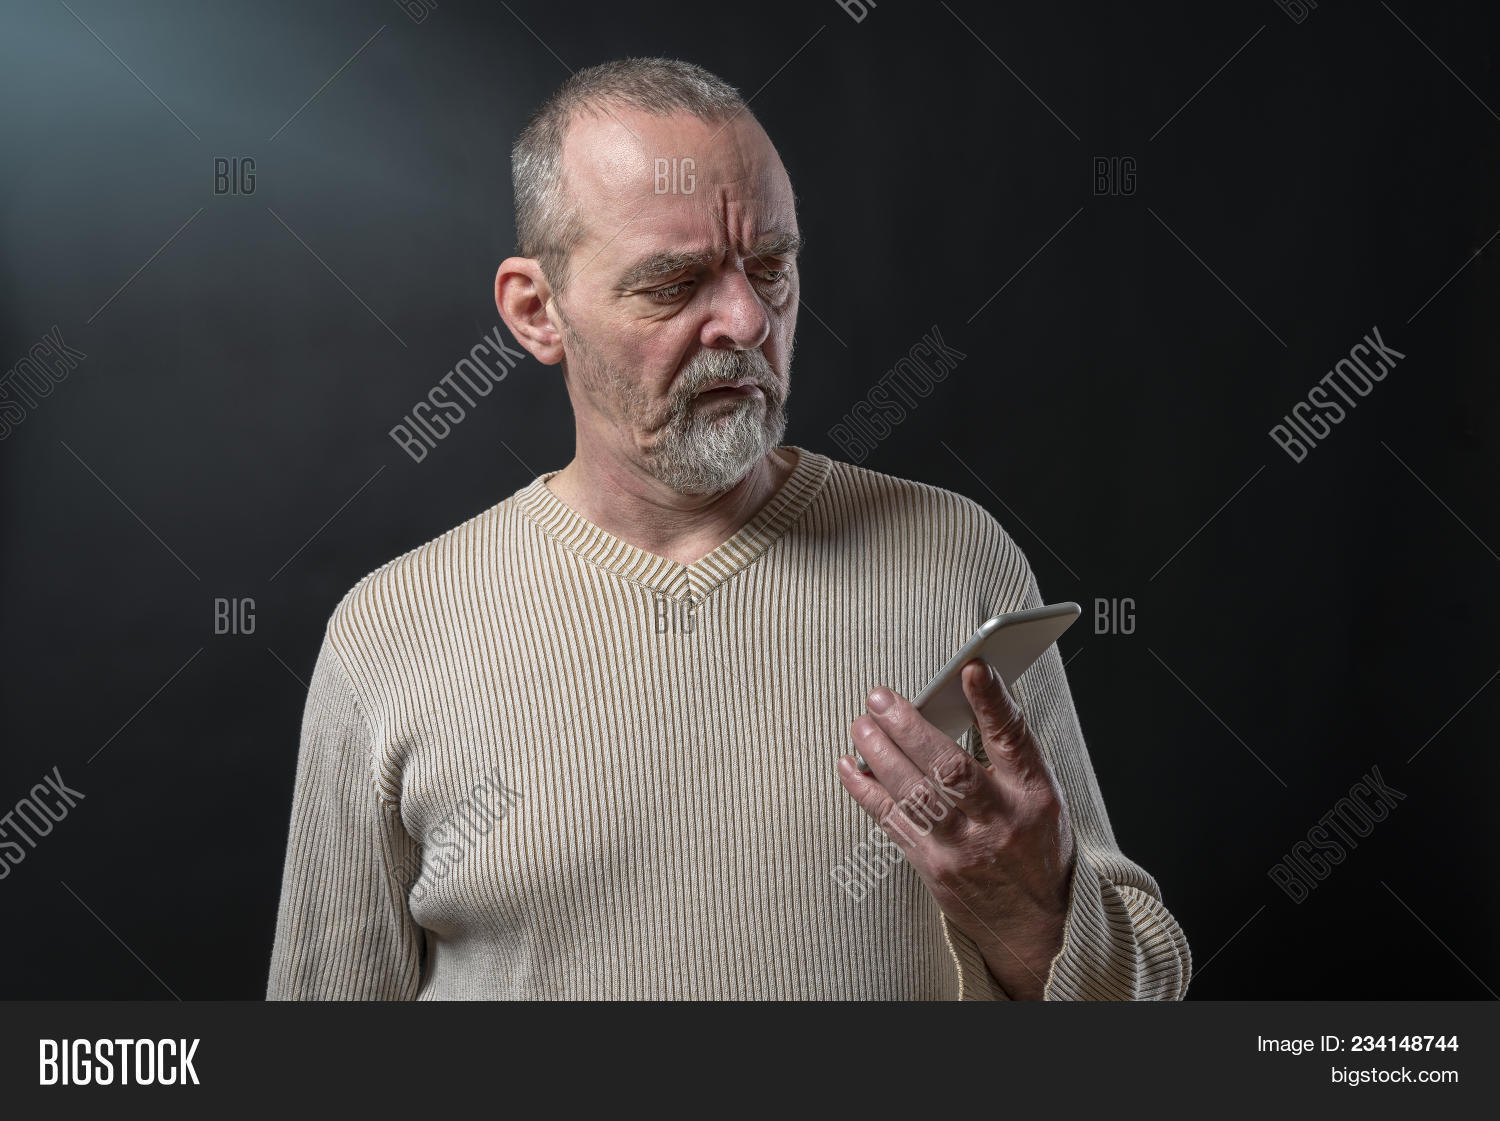 Old Man Does Not Understand His Smart Phone 234148744 Image